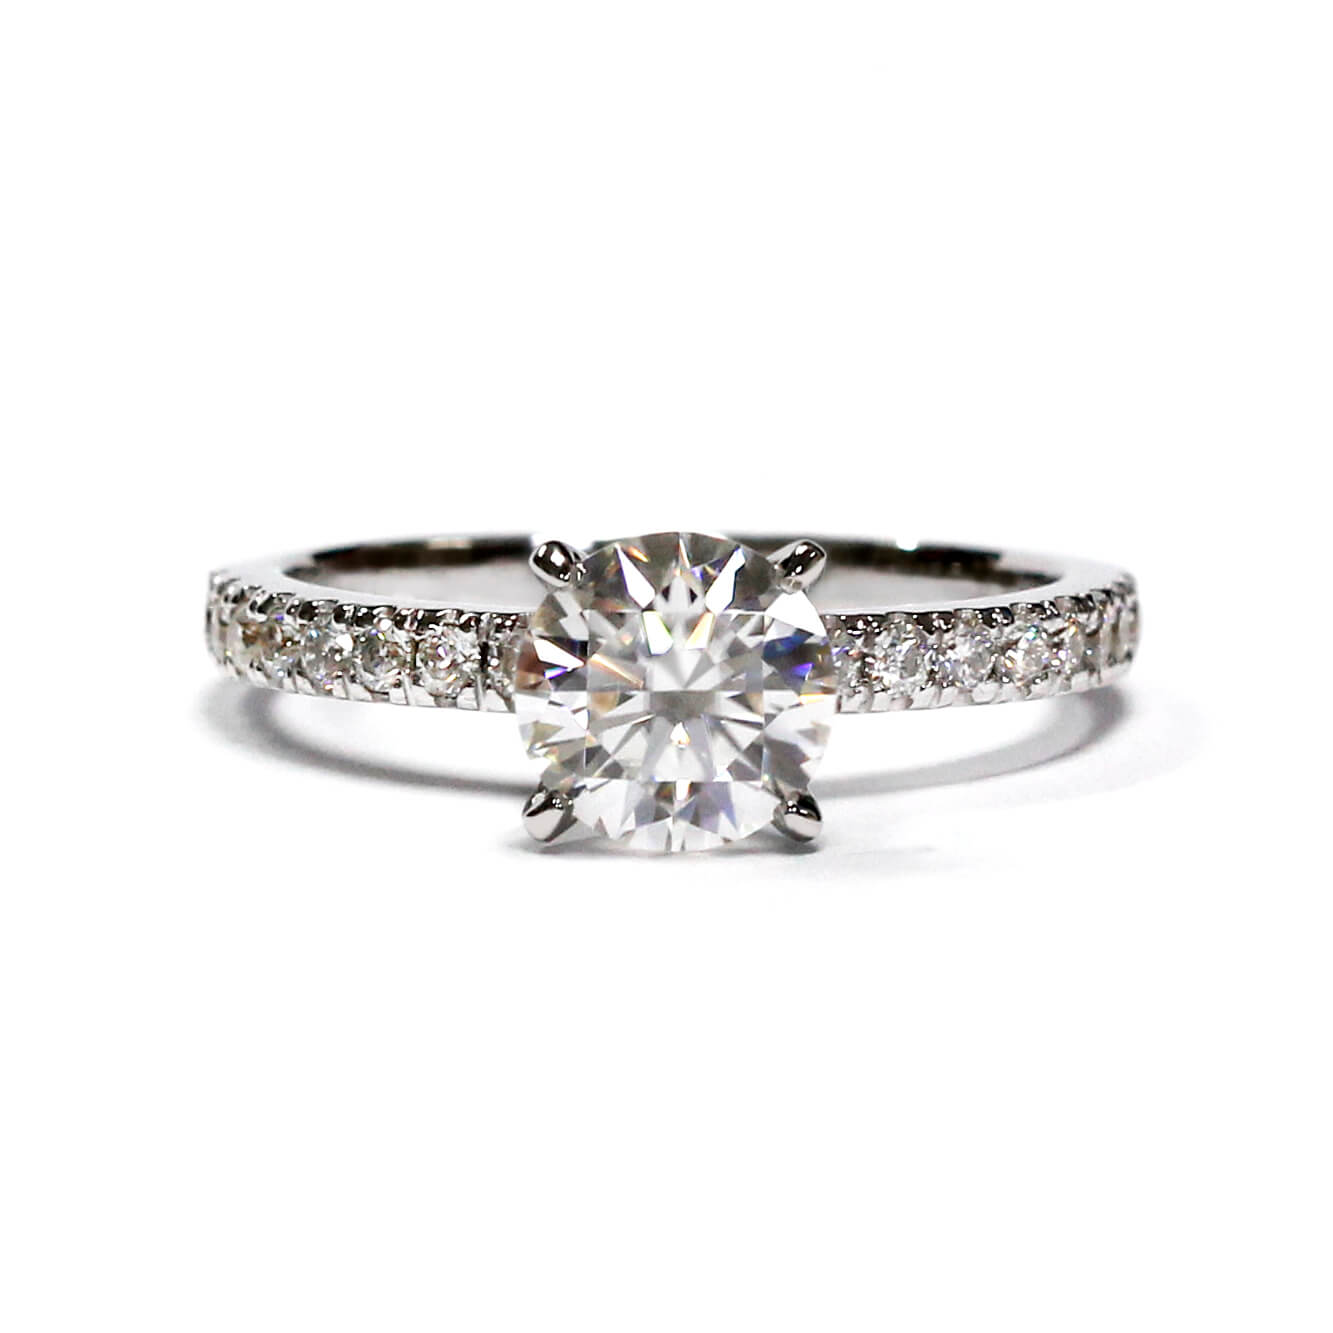 1 Carat Moissanite Crown Setting with Accent Stones